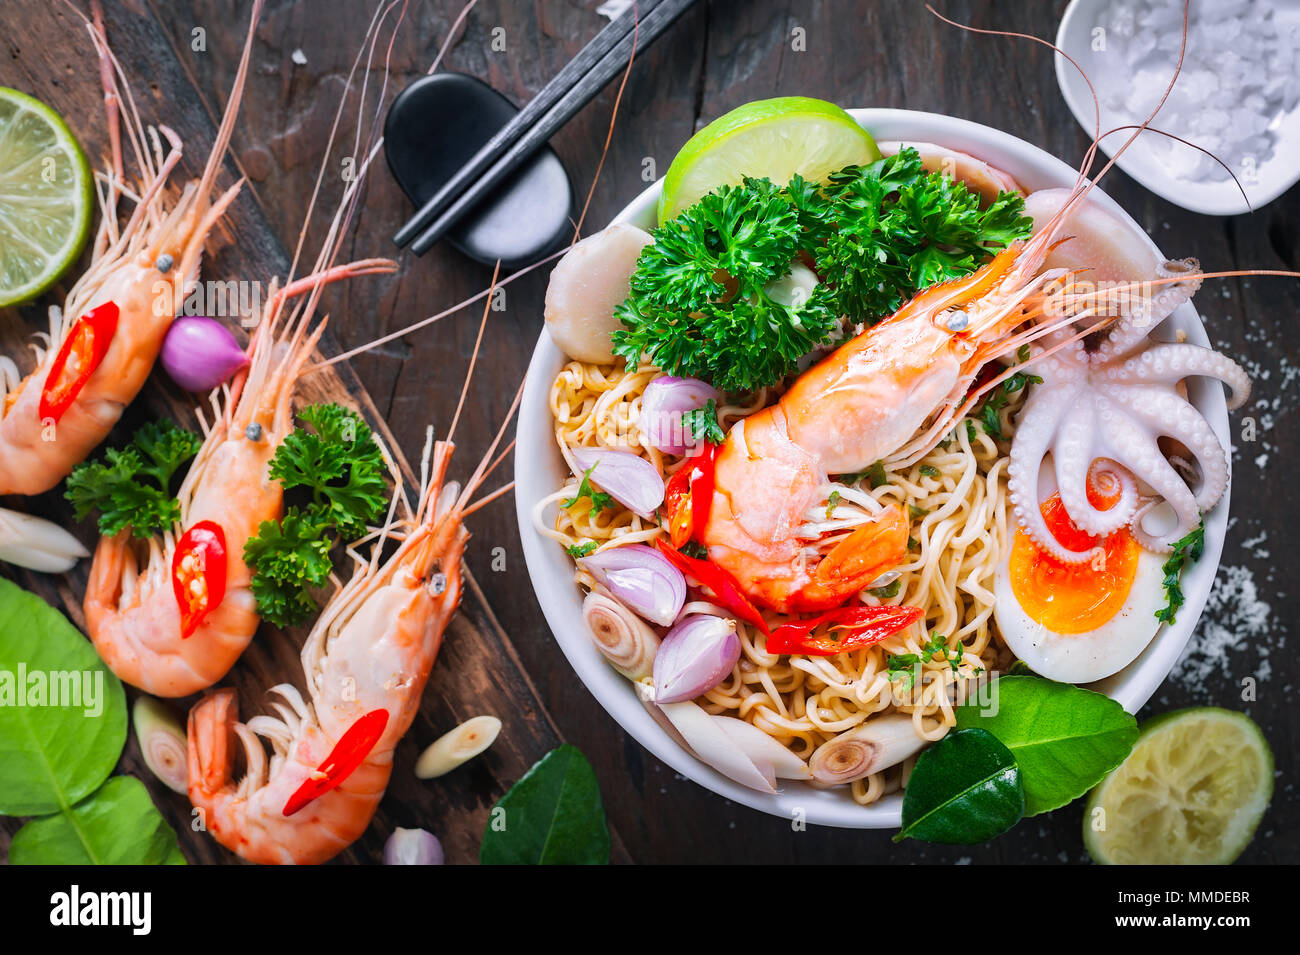 Hot seafood noodle in white bowl on wooden table - Stock Image